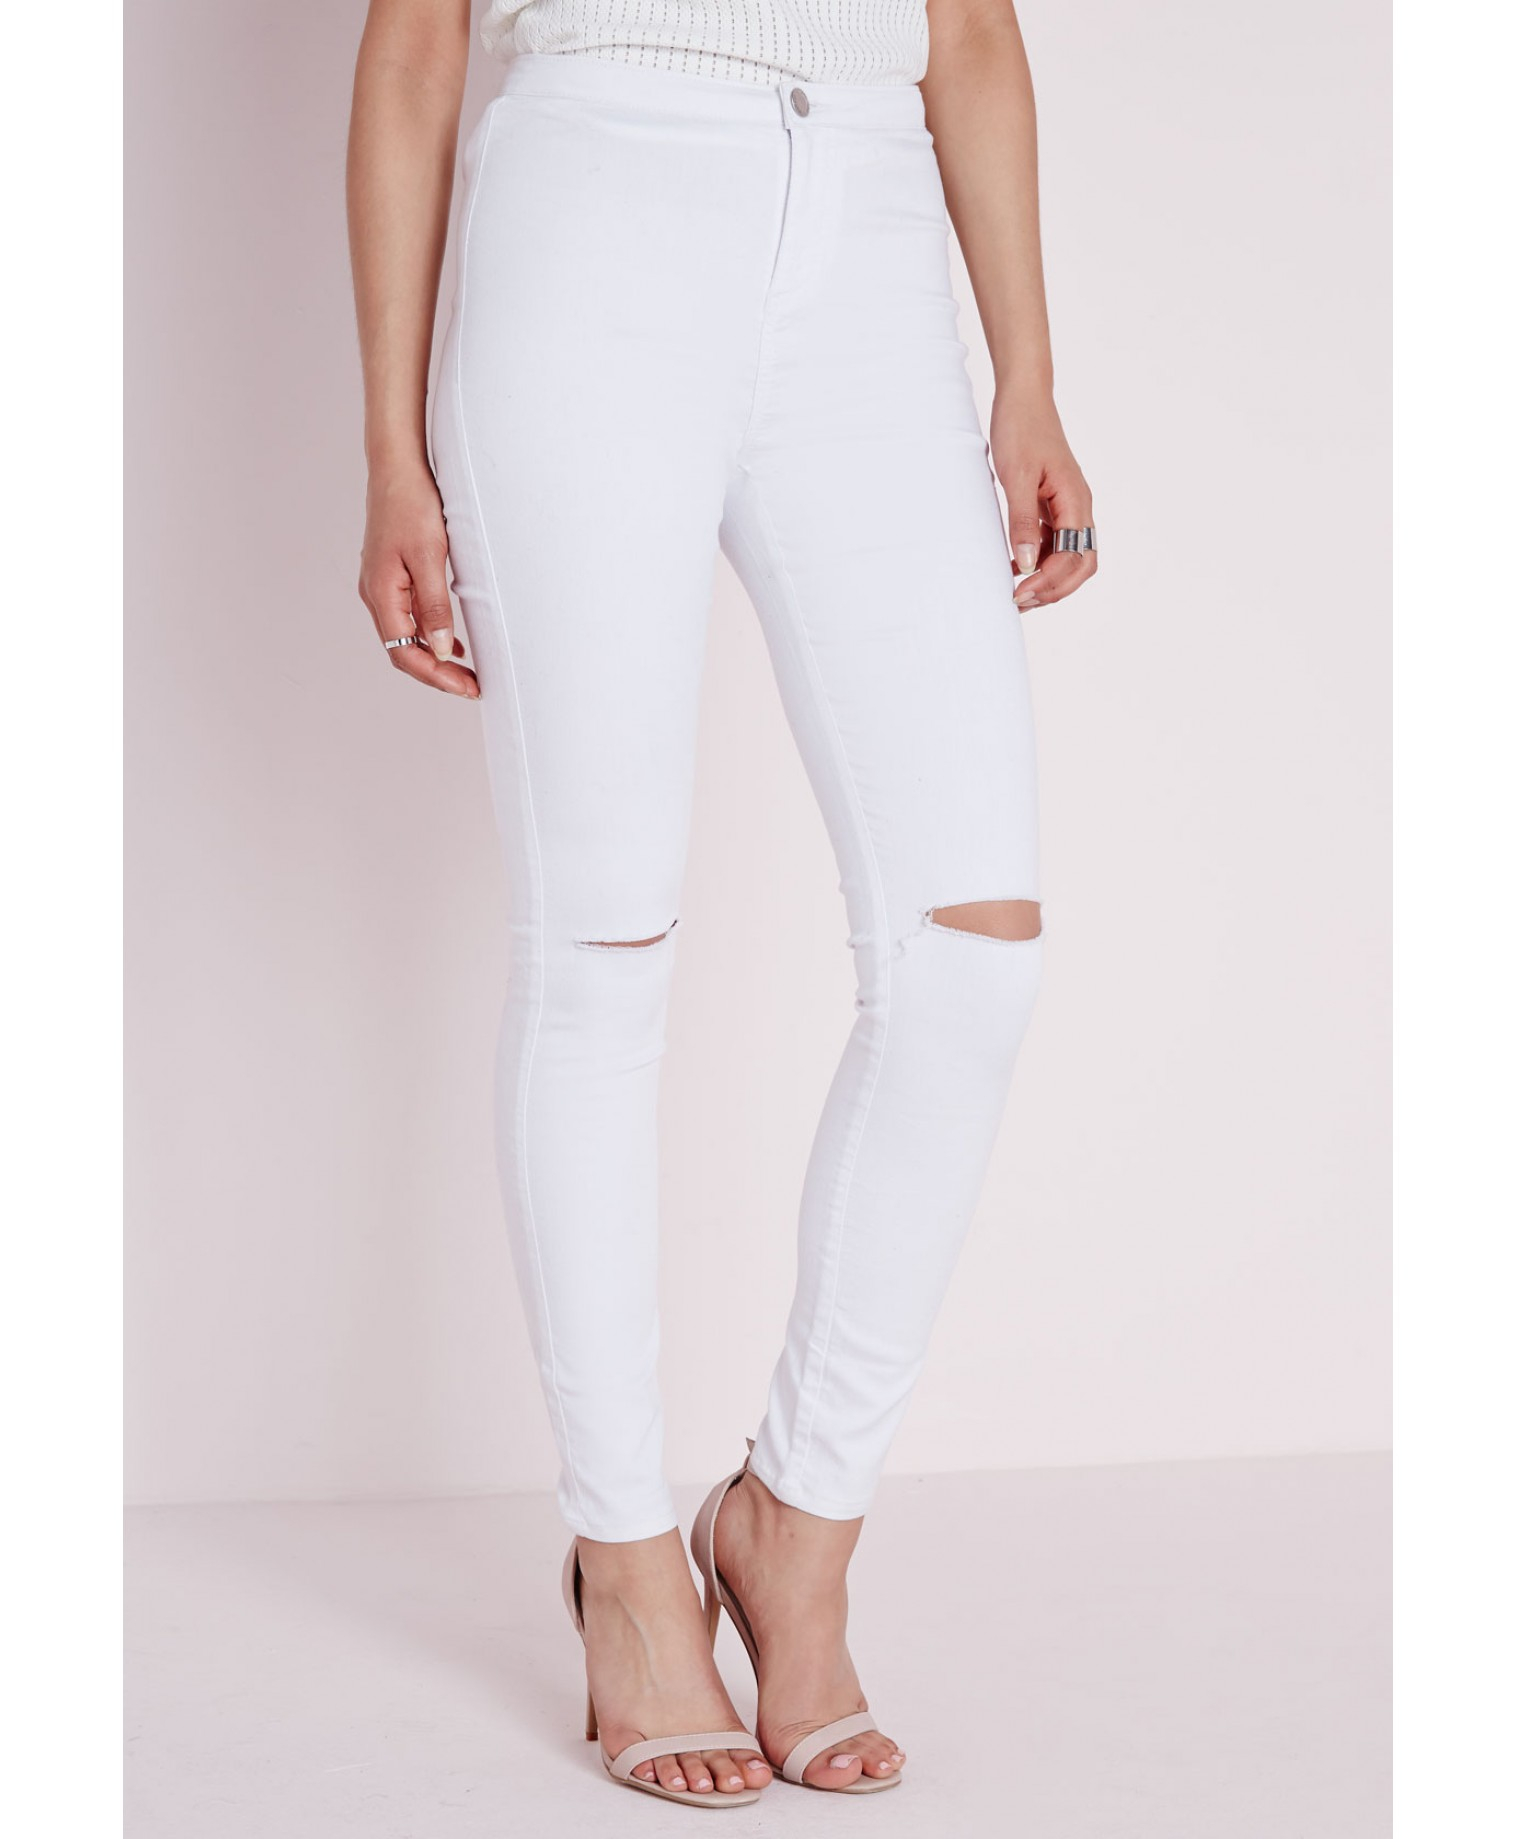 White jeans ripped at knee – Global fashion jeans collection